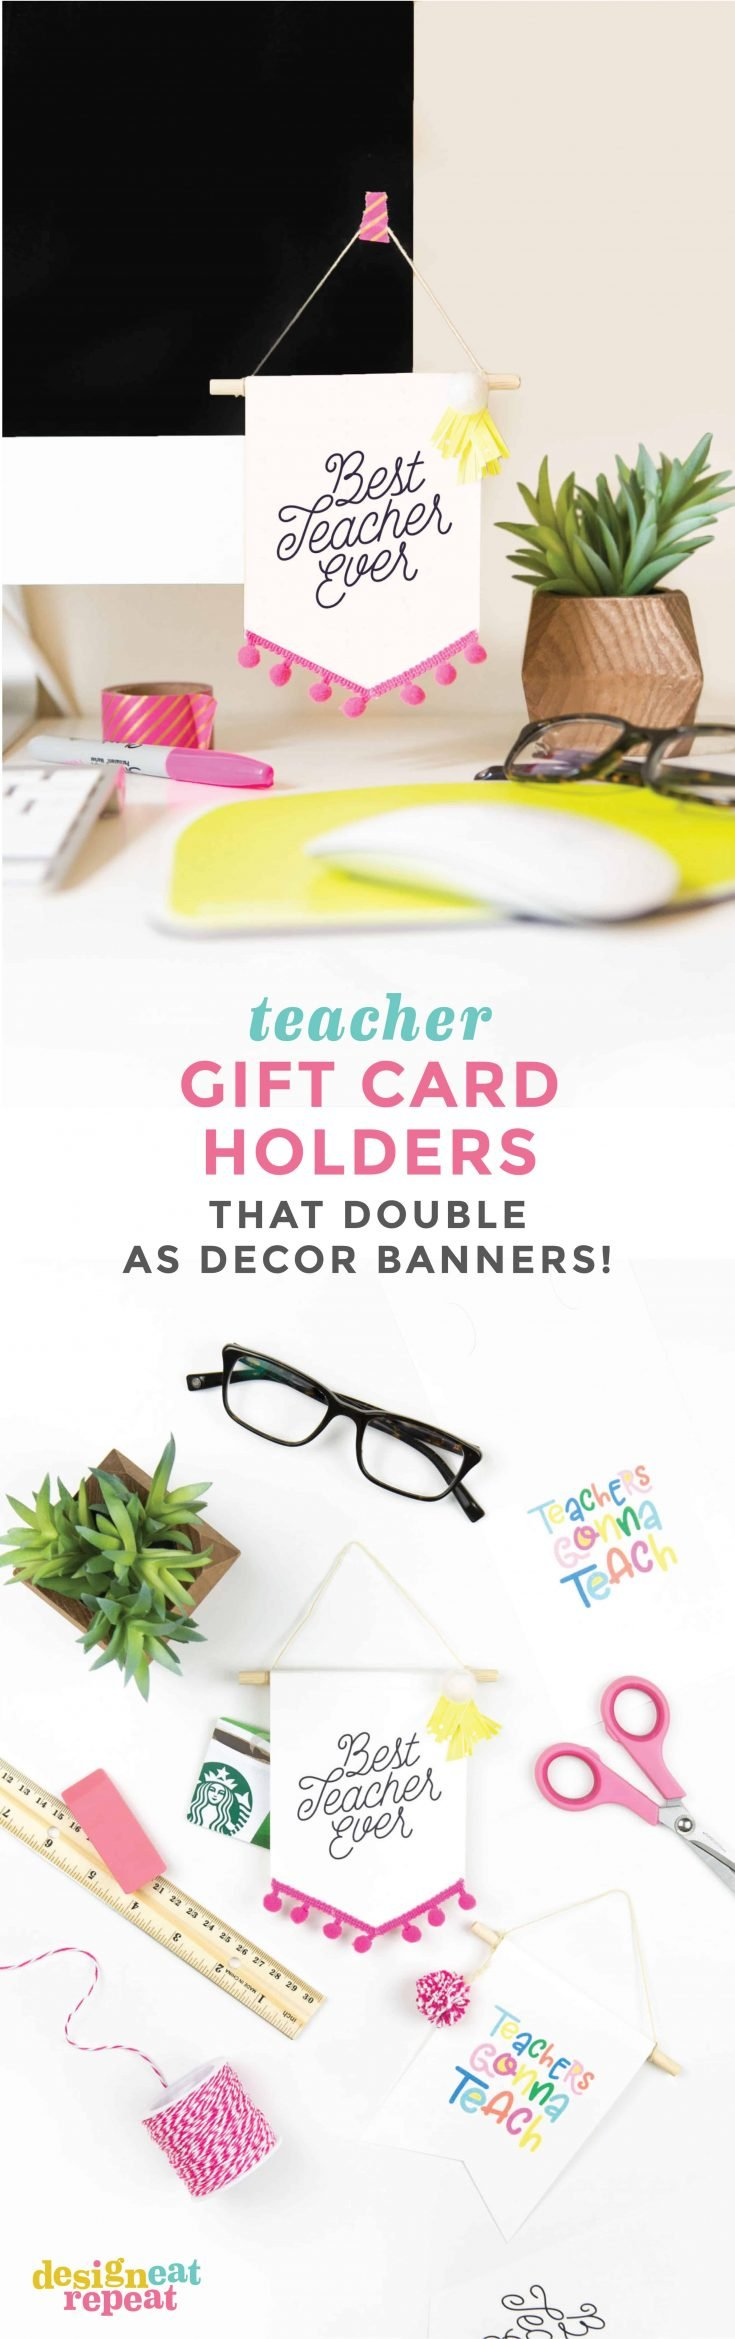 Teacher Gift Card Holders That Double As Adorable Banner Decor!